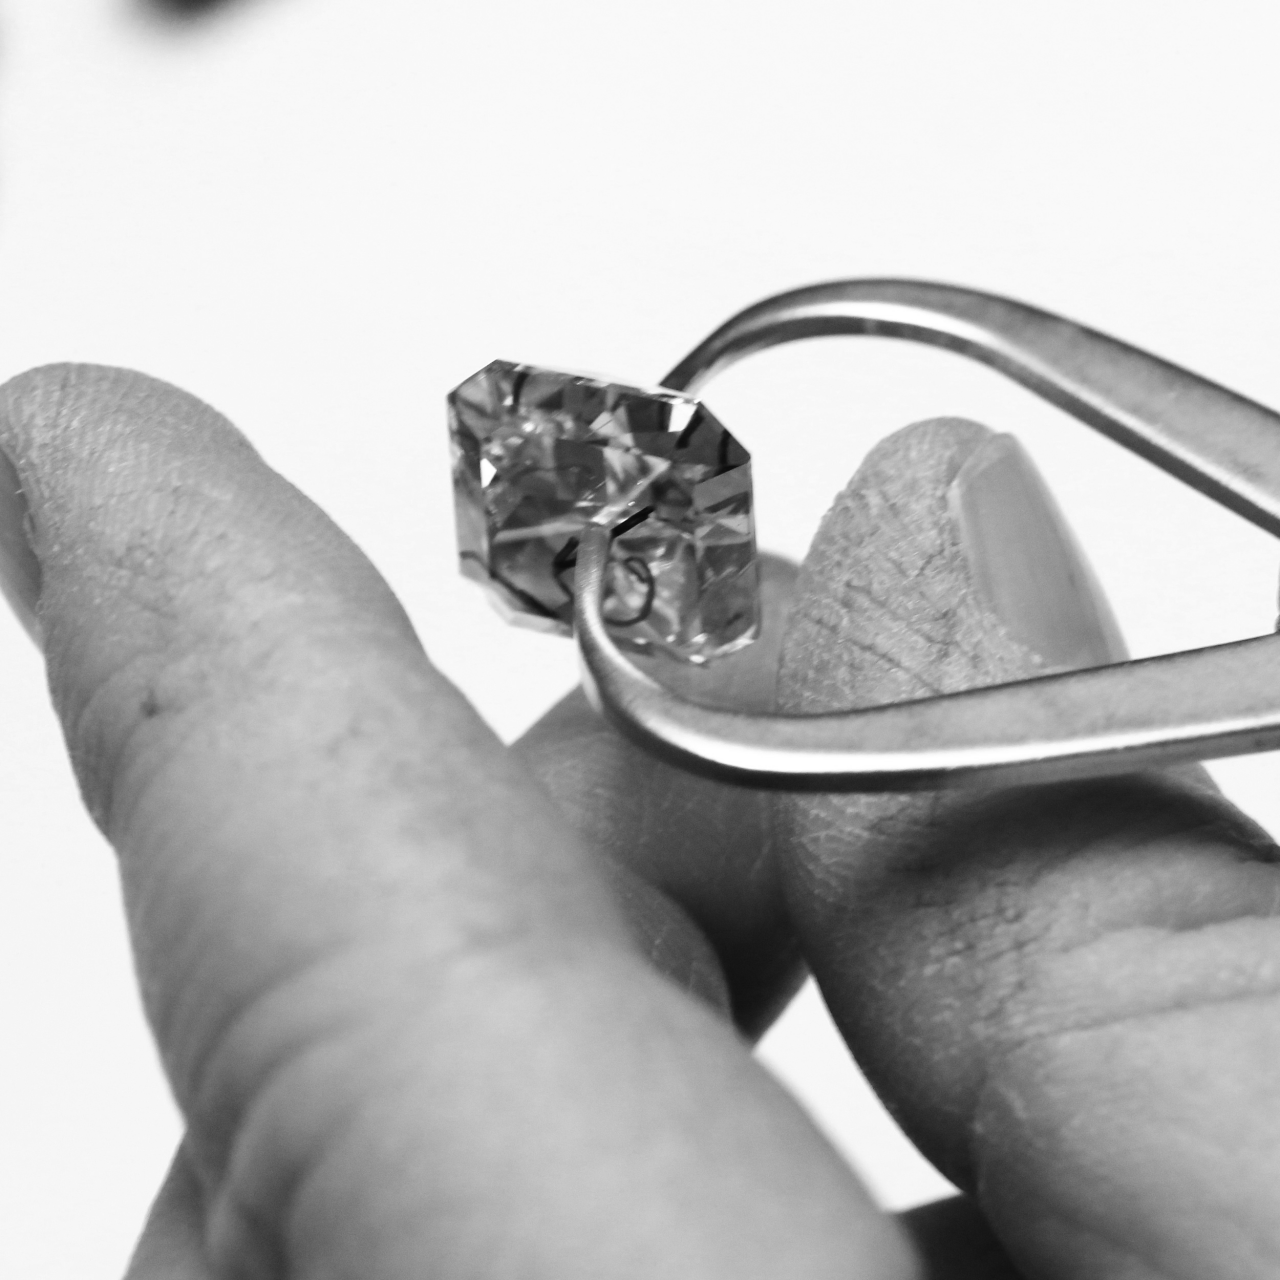 Ten Little Known Facts About Diamonds